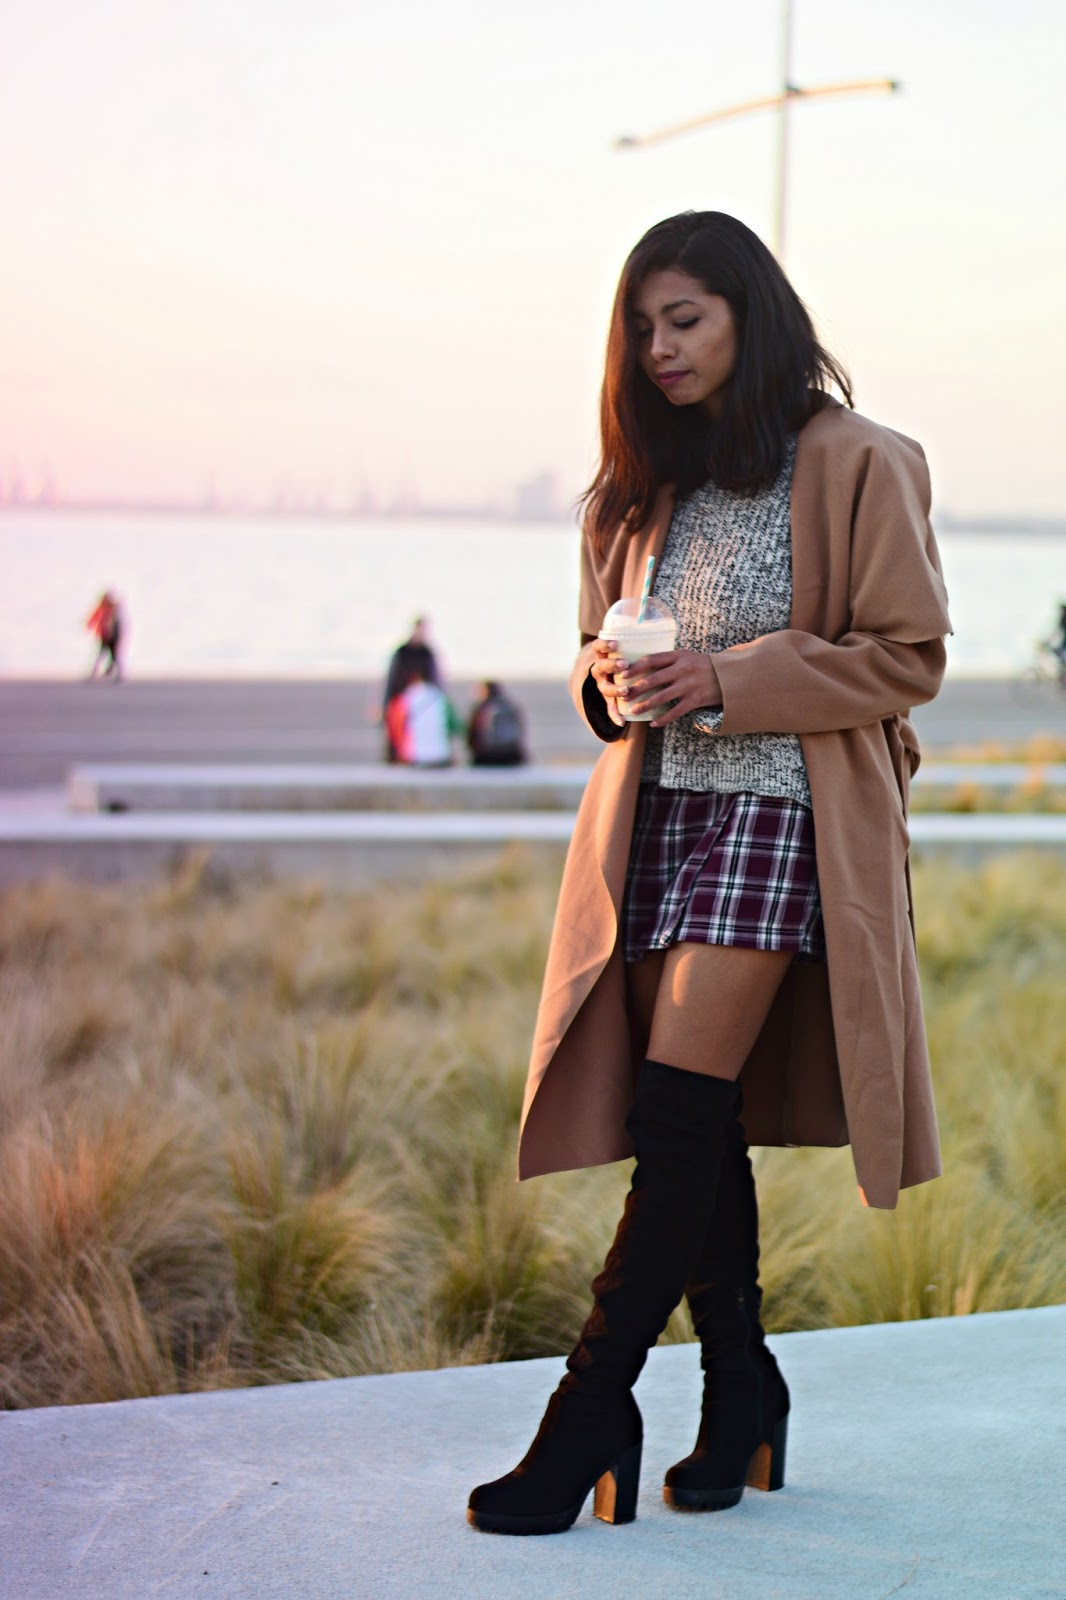 k-meets-style how to style plaid skirts in winter